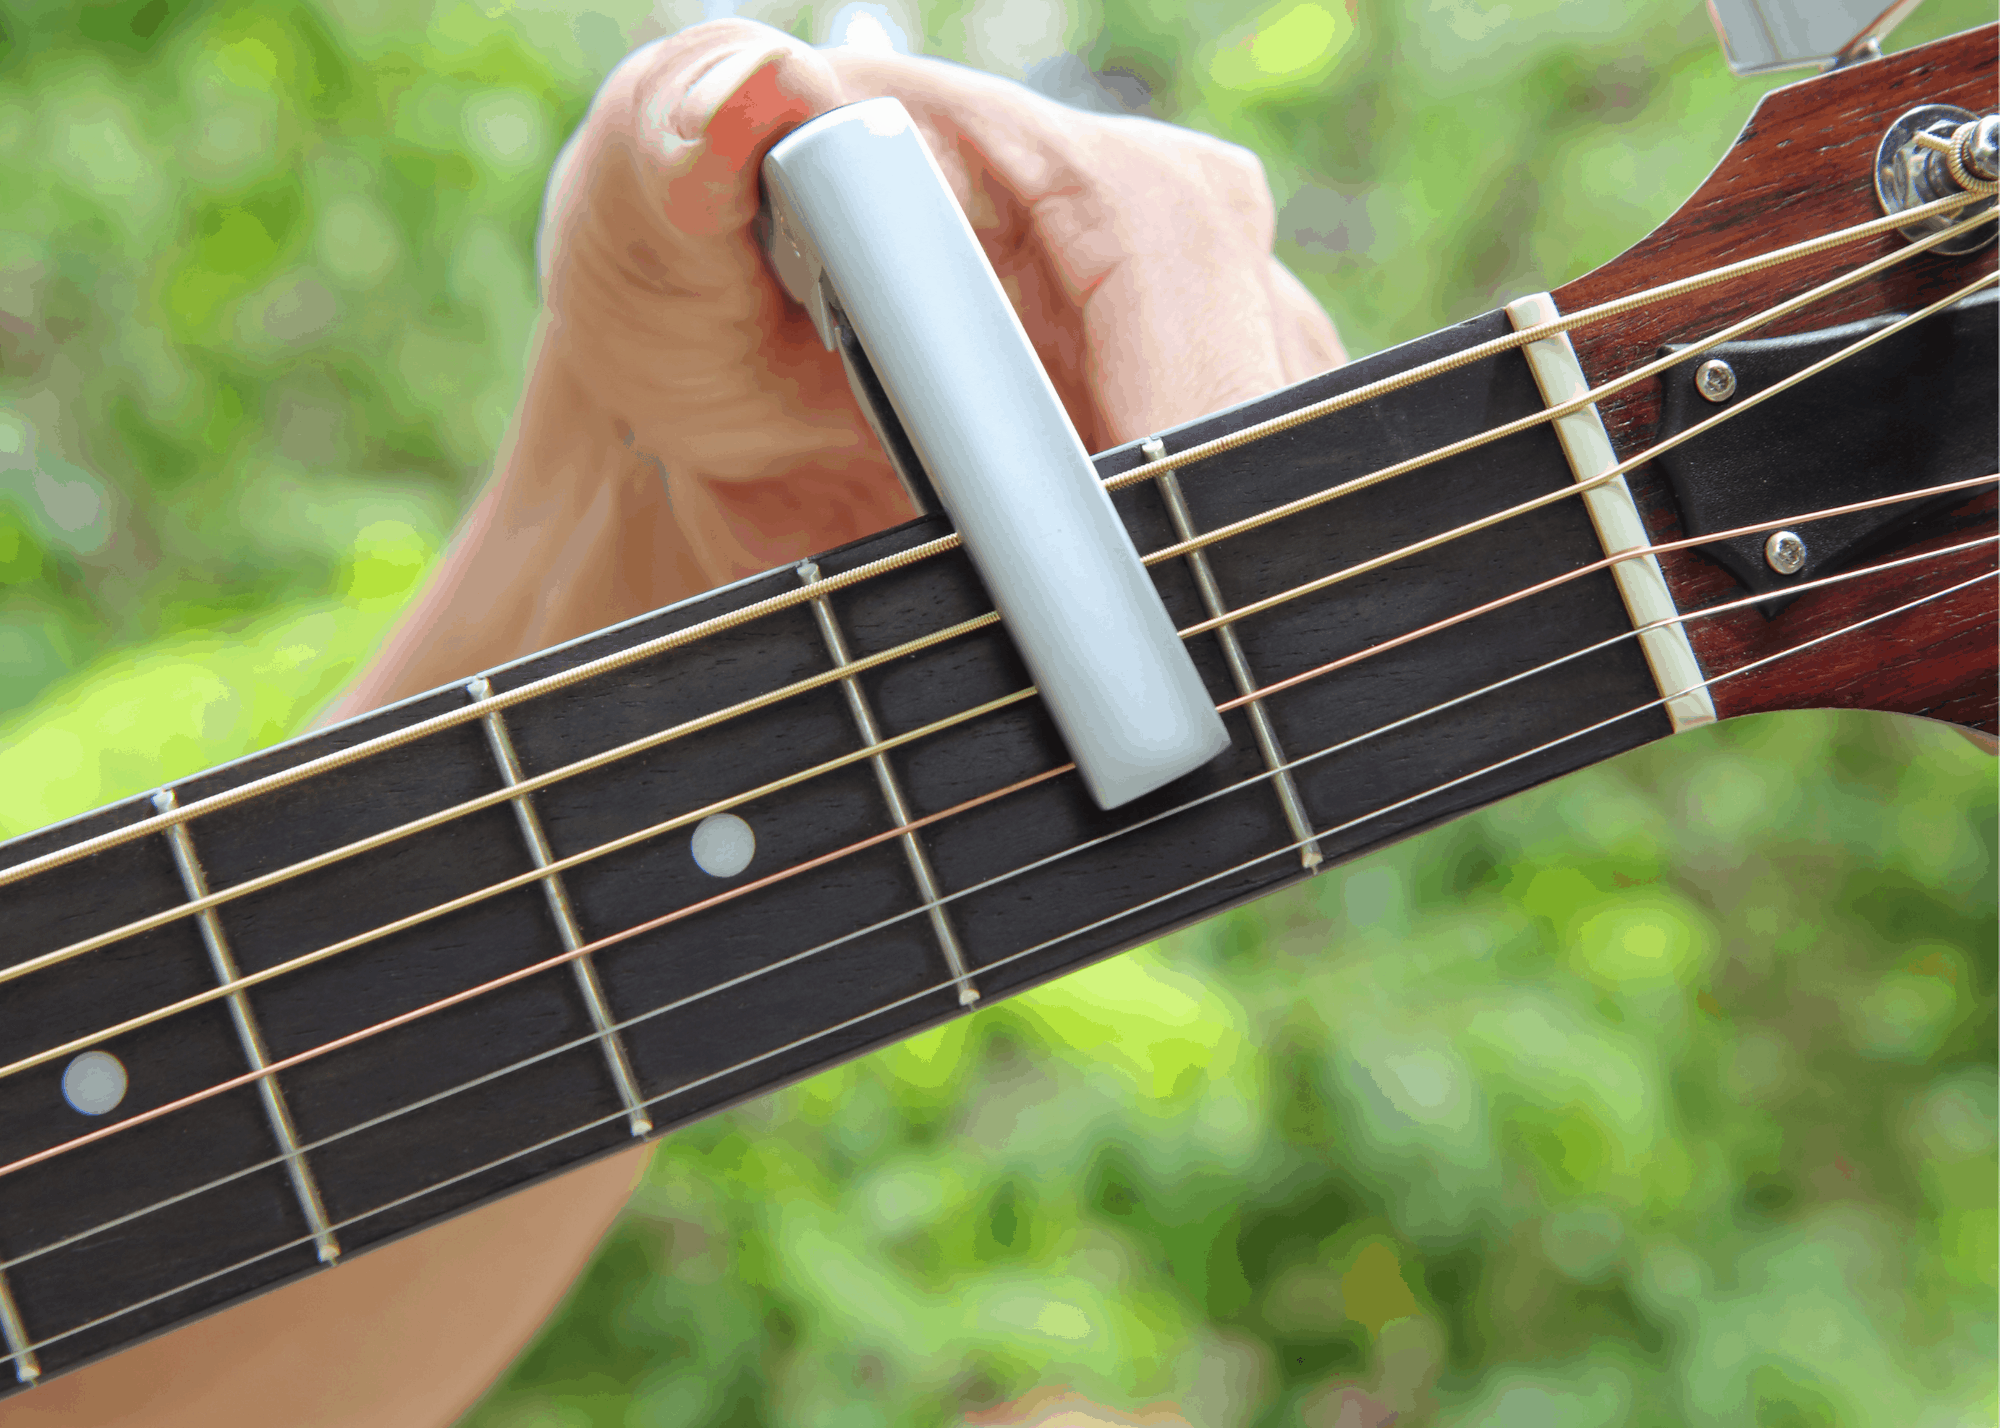 changing keys with a capo exercises